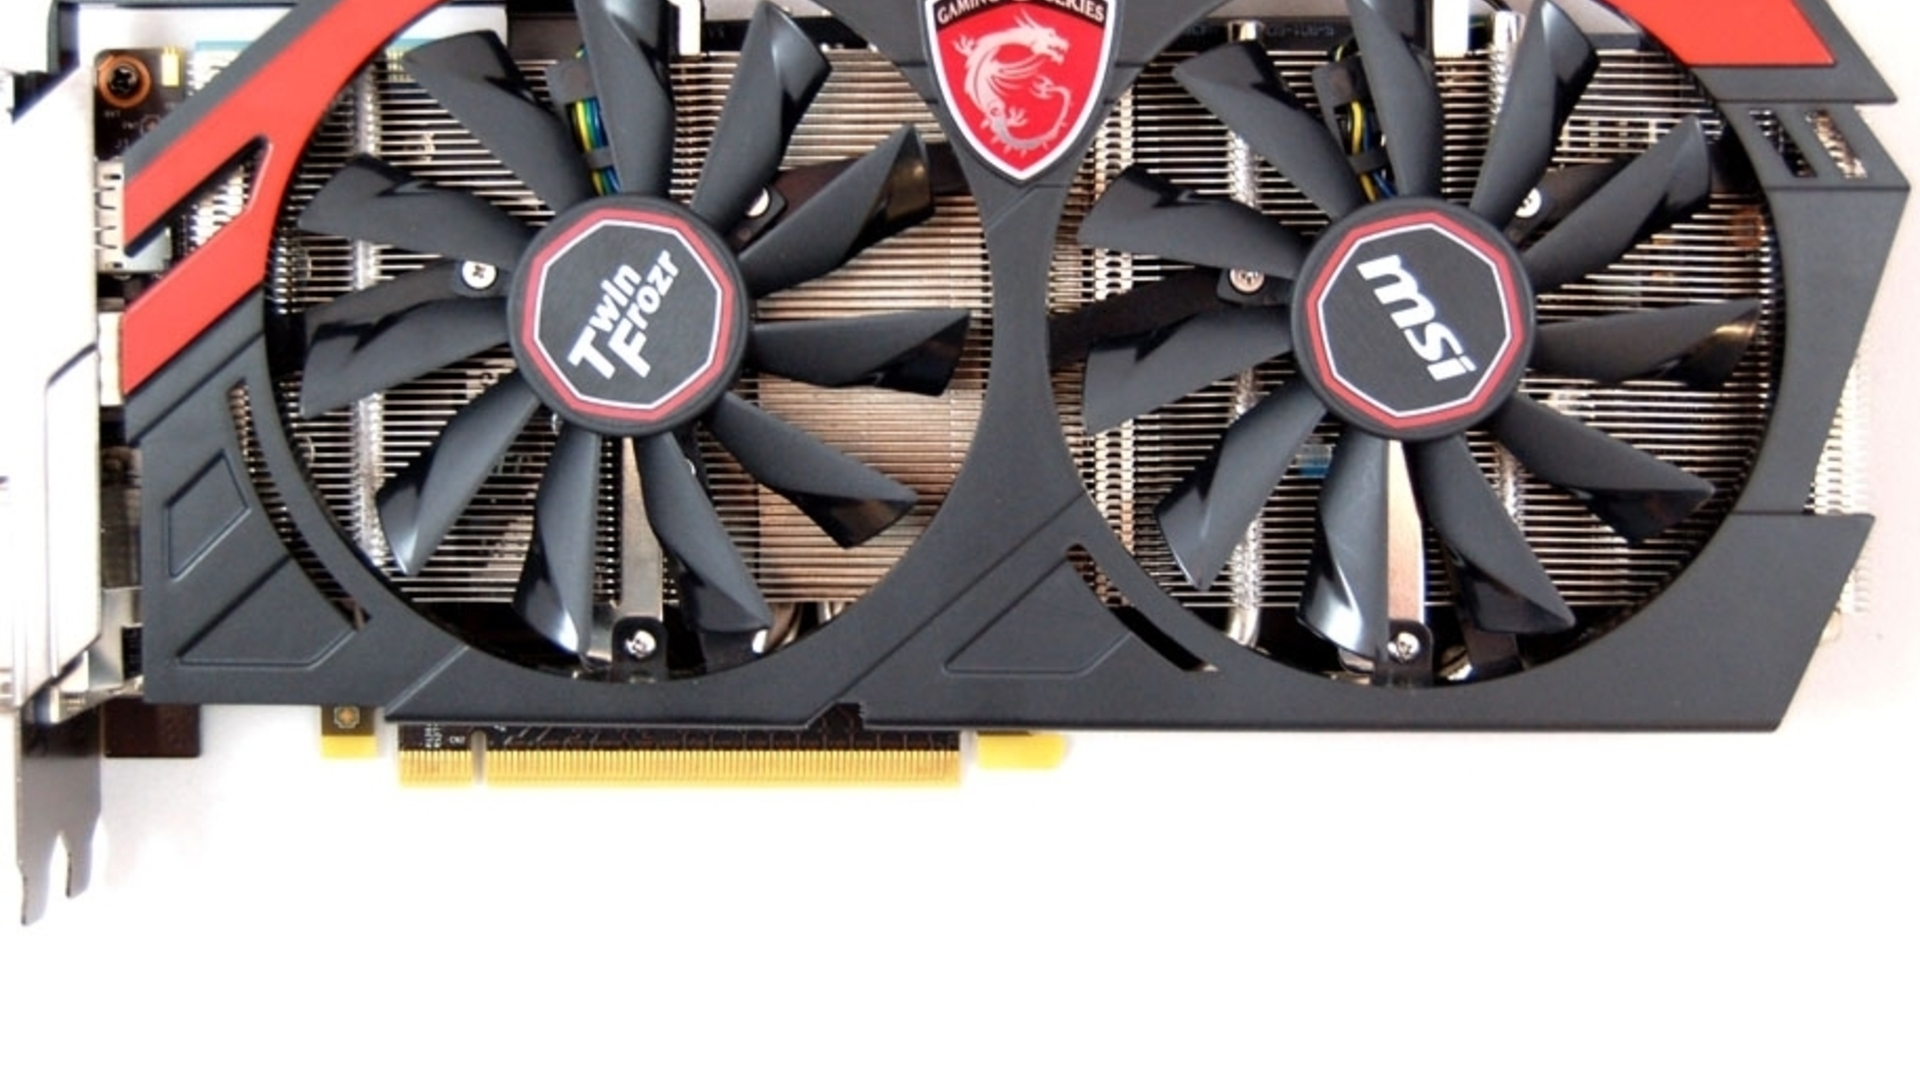 Nvidia GeForce GTX 760 review